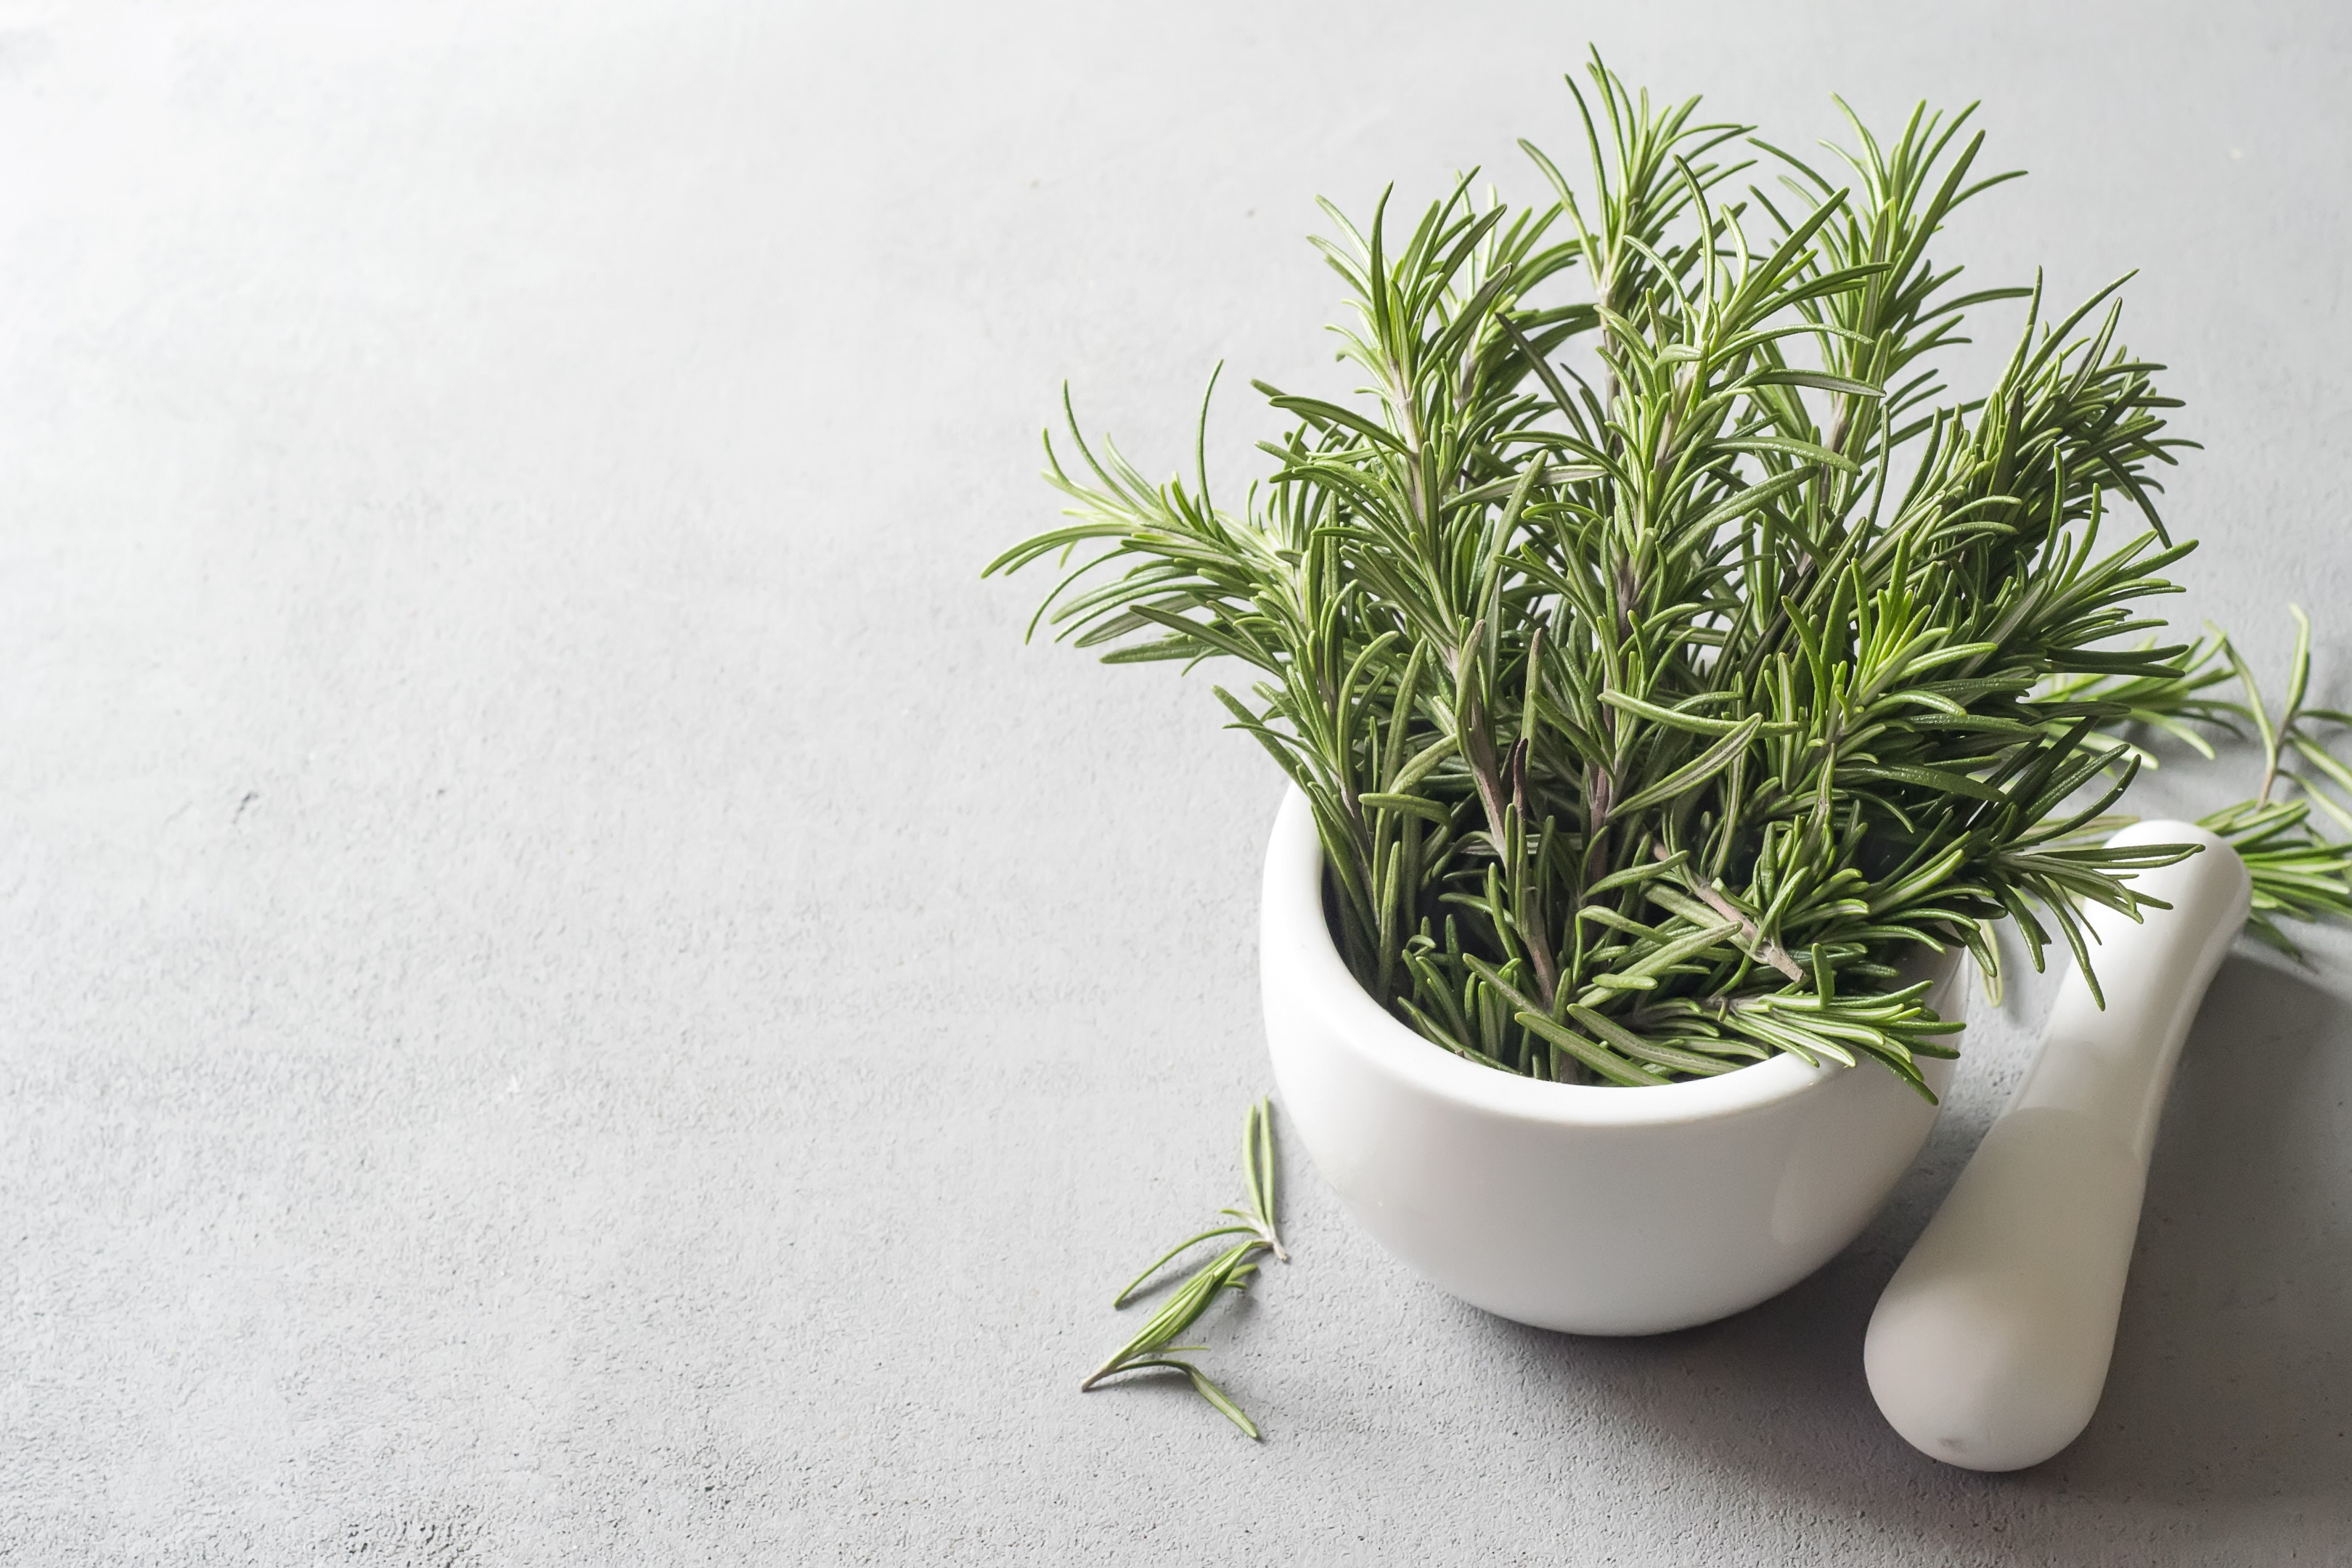 Rosemary in a ceramic bowl on a light background